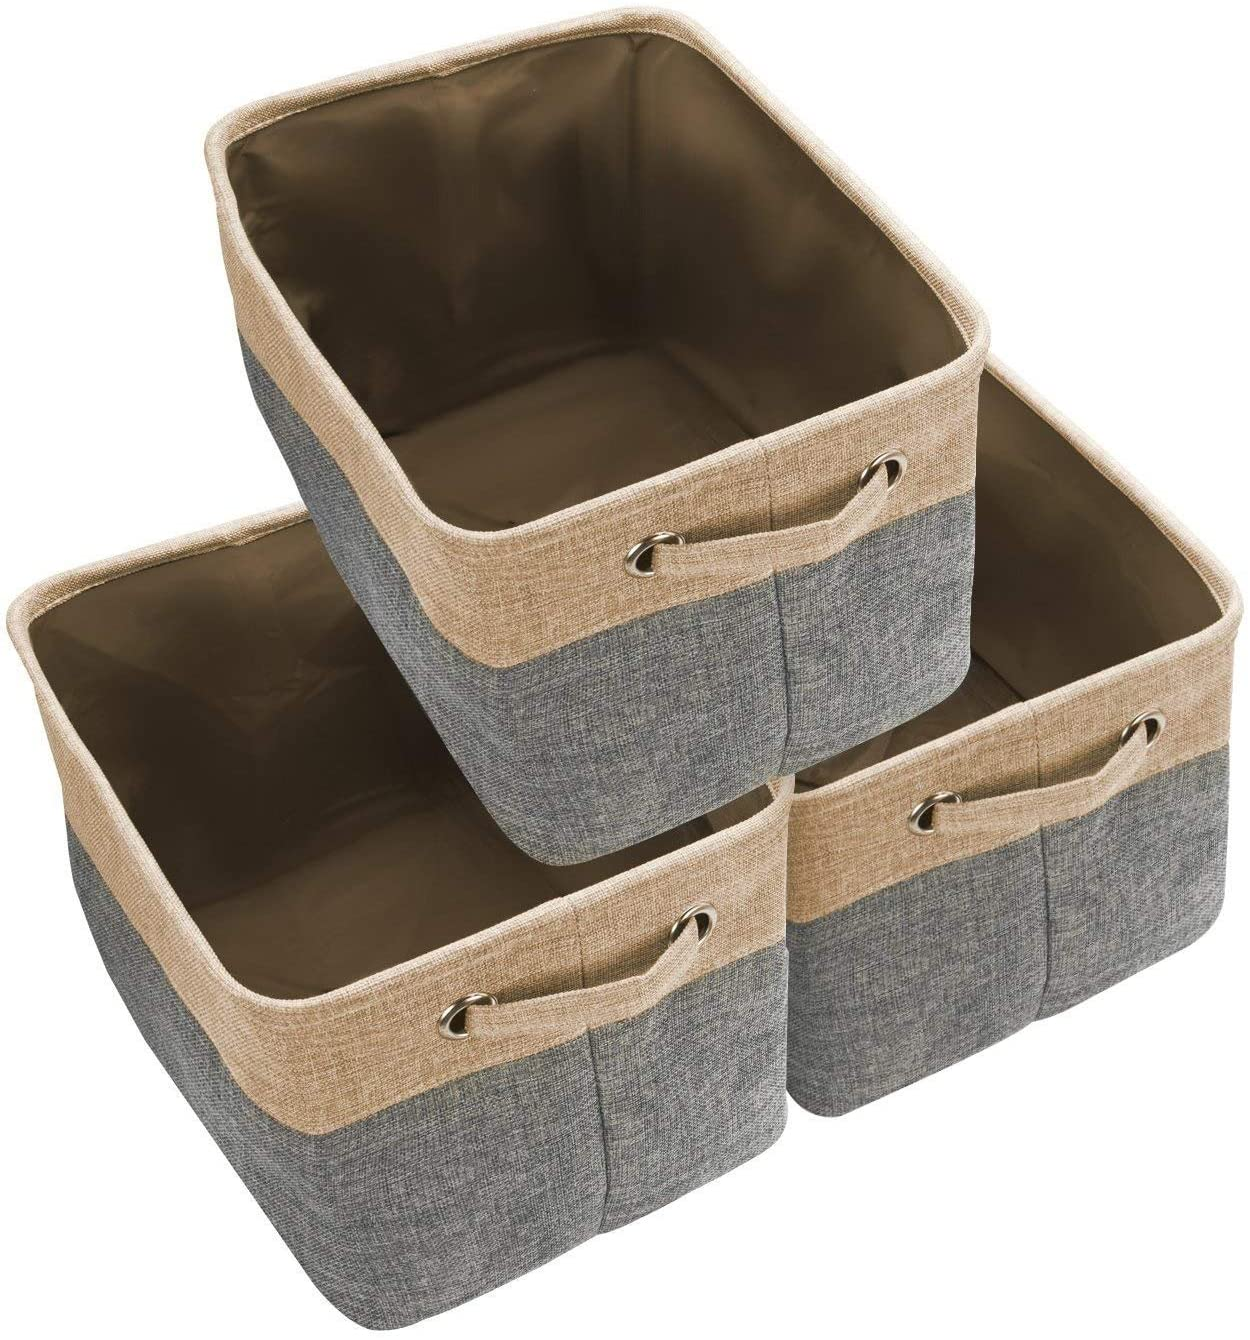 Awekris Large Storage Basket Bin Set Red 3-Pack Storage Cube Box Foldable Canvas Fabric Collapsible Organizer with Handles for Home Office Closet,